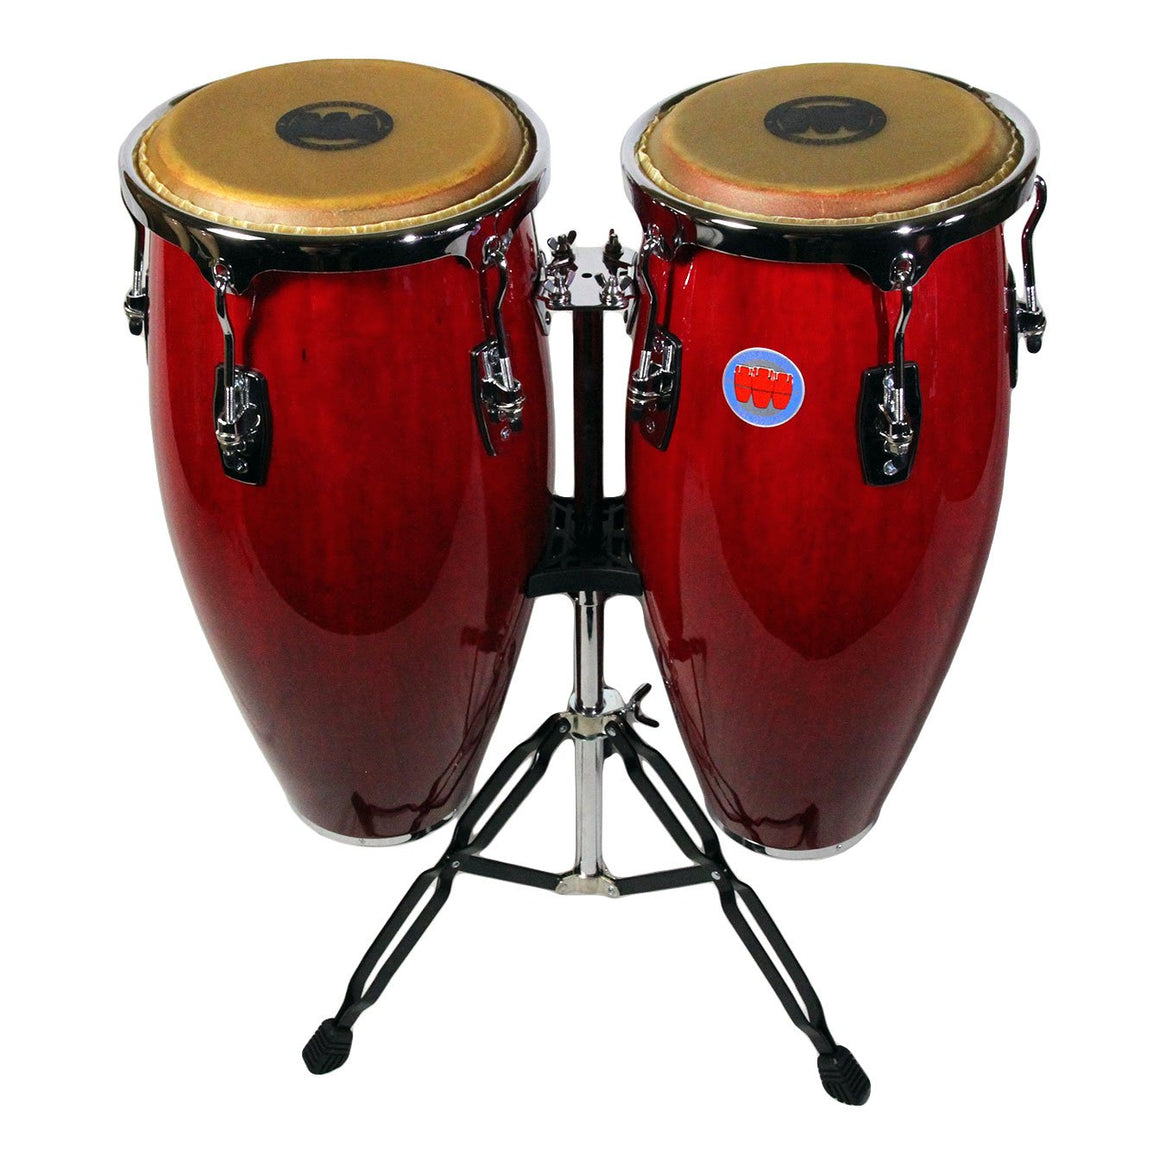 Mambo Series Congas in Wine Red Finish